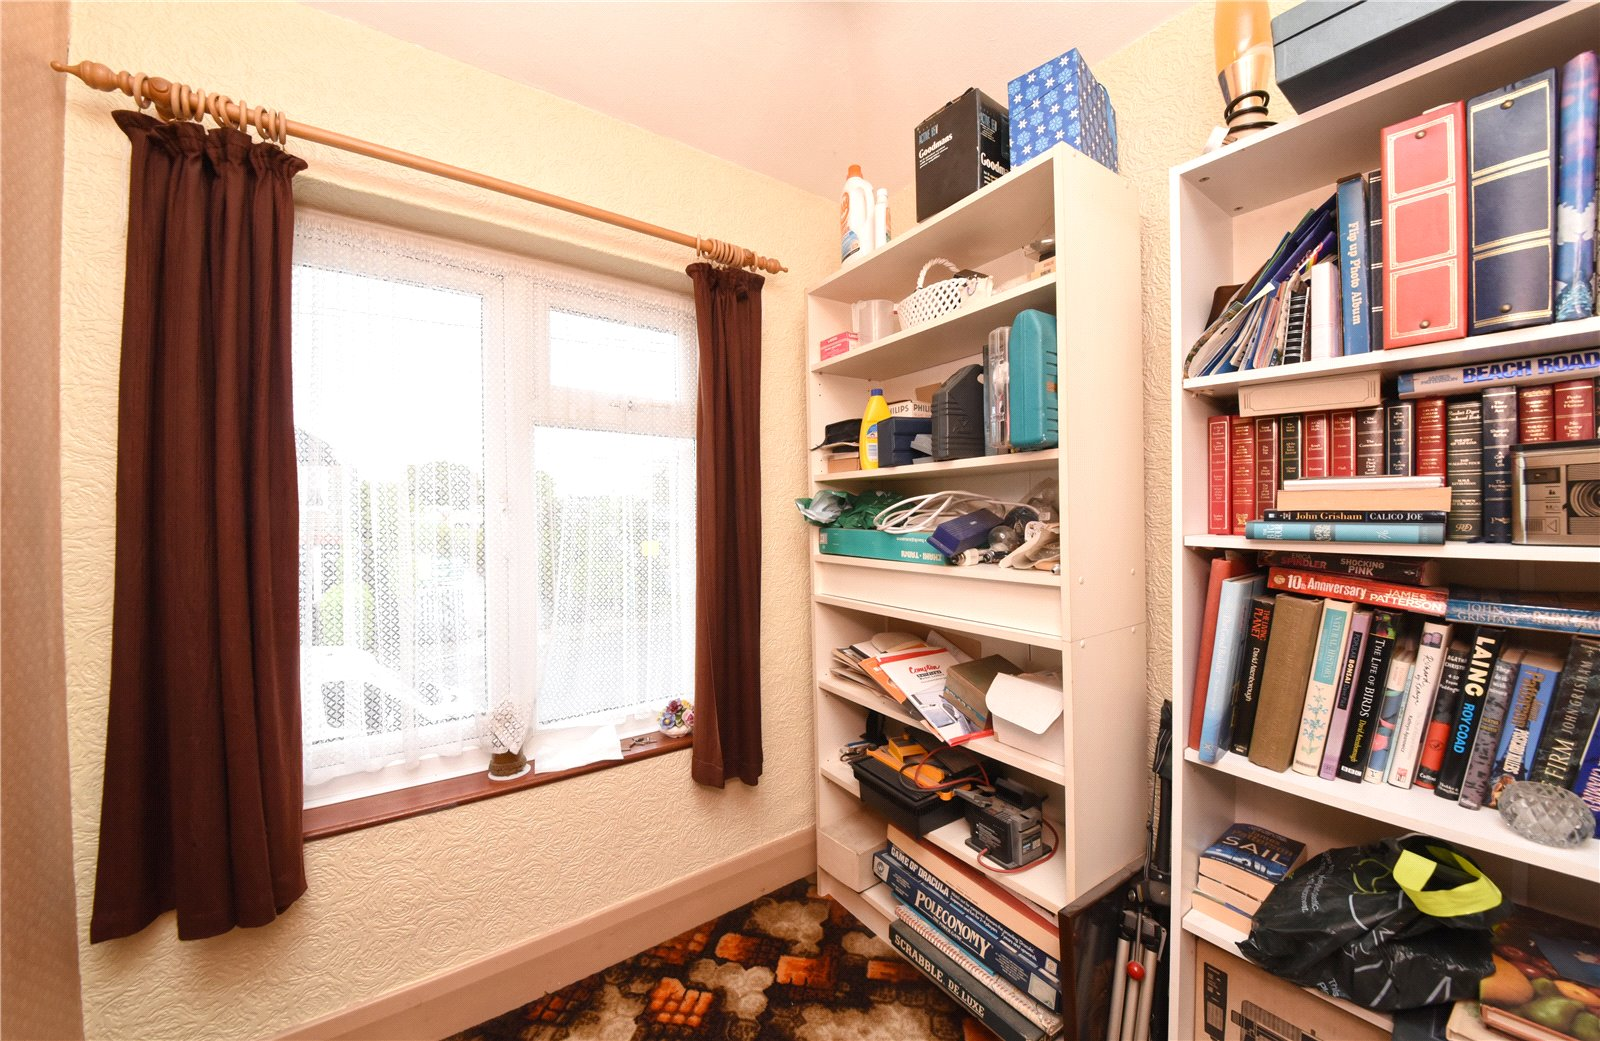 3 bed house for sale in Whetstone, N20 0DG  - Property Image 10